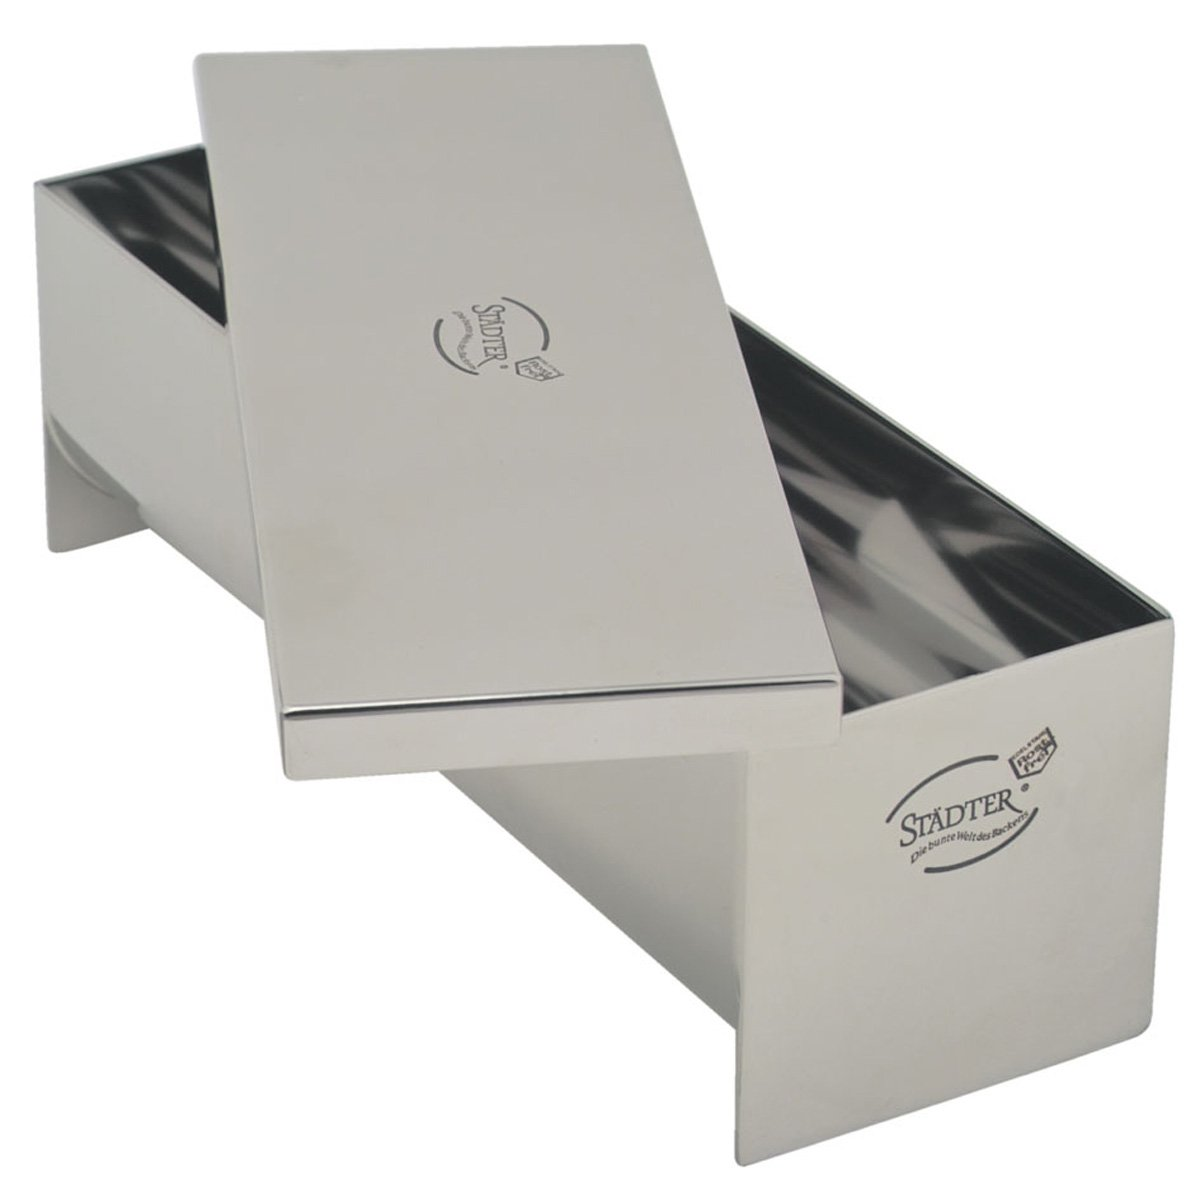 Städter 62207 Pie and Terrine Dish with Lid 230 x 75 x 75 mm 1 Litre Rustproof Stainless Steel